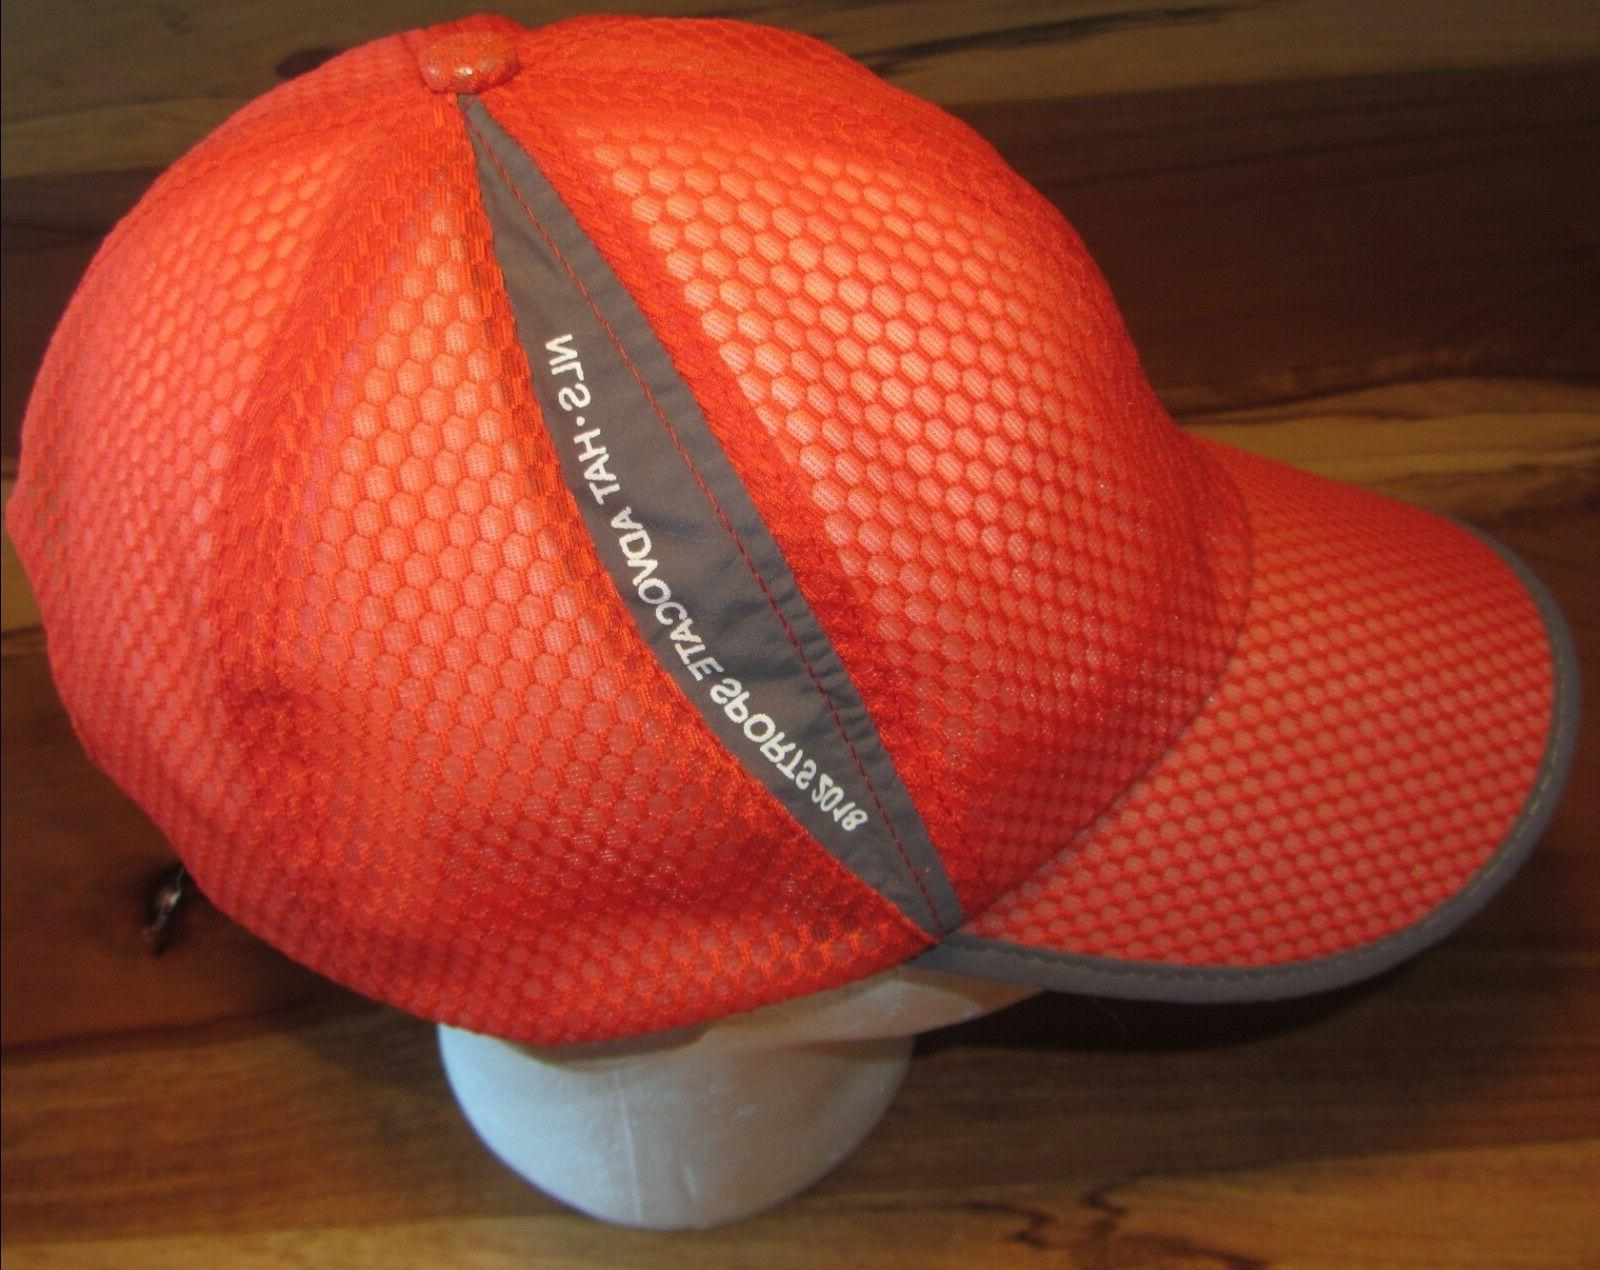 NLS Mens Cap, Hat, Orange, Strapback,